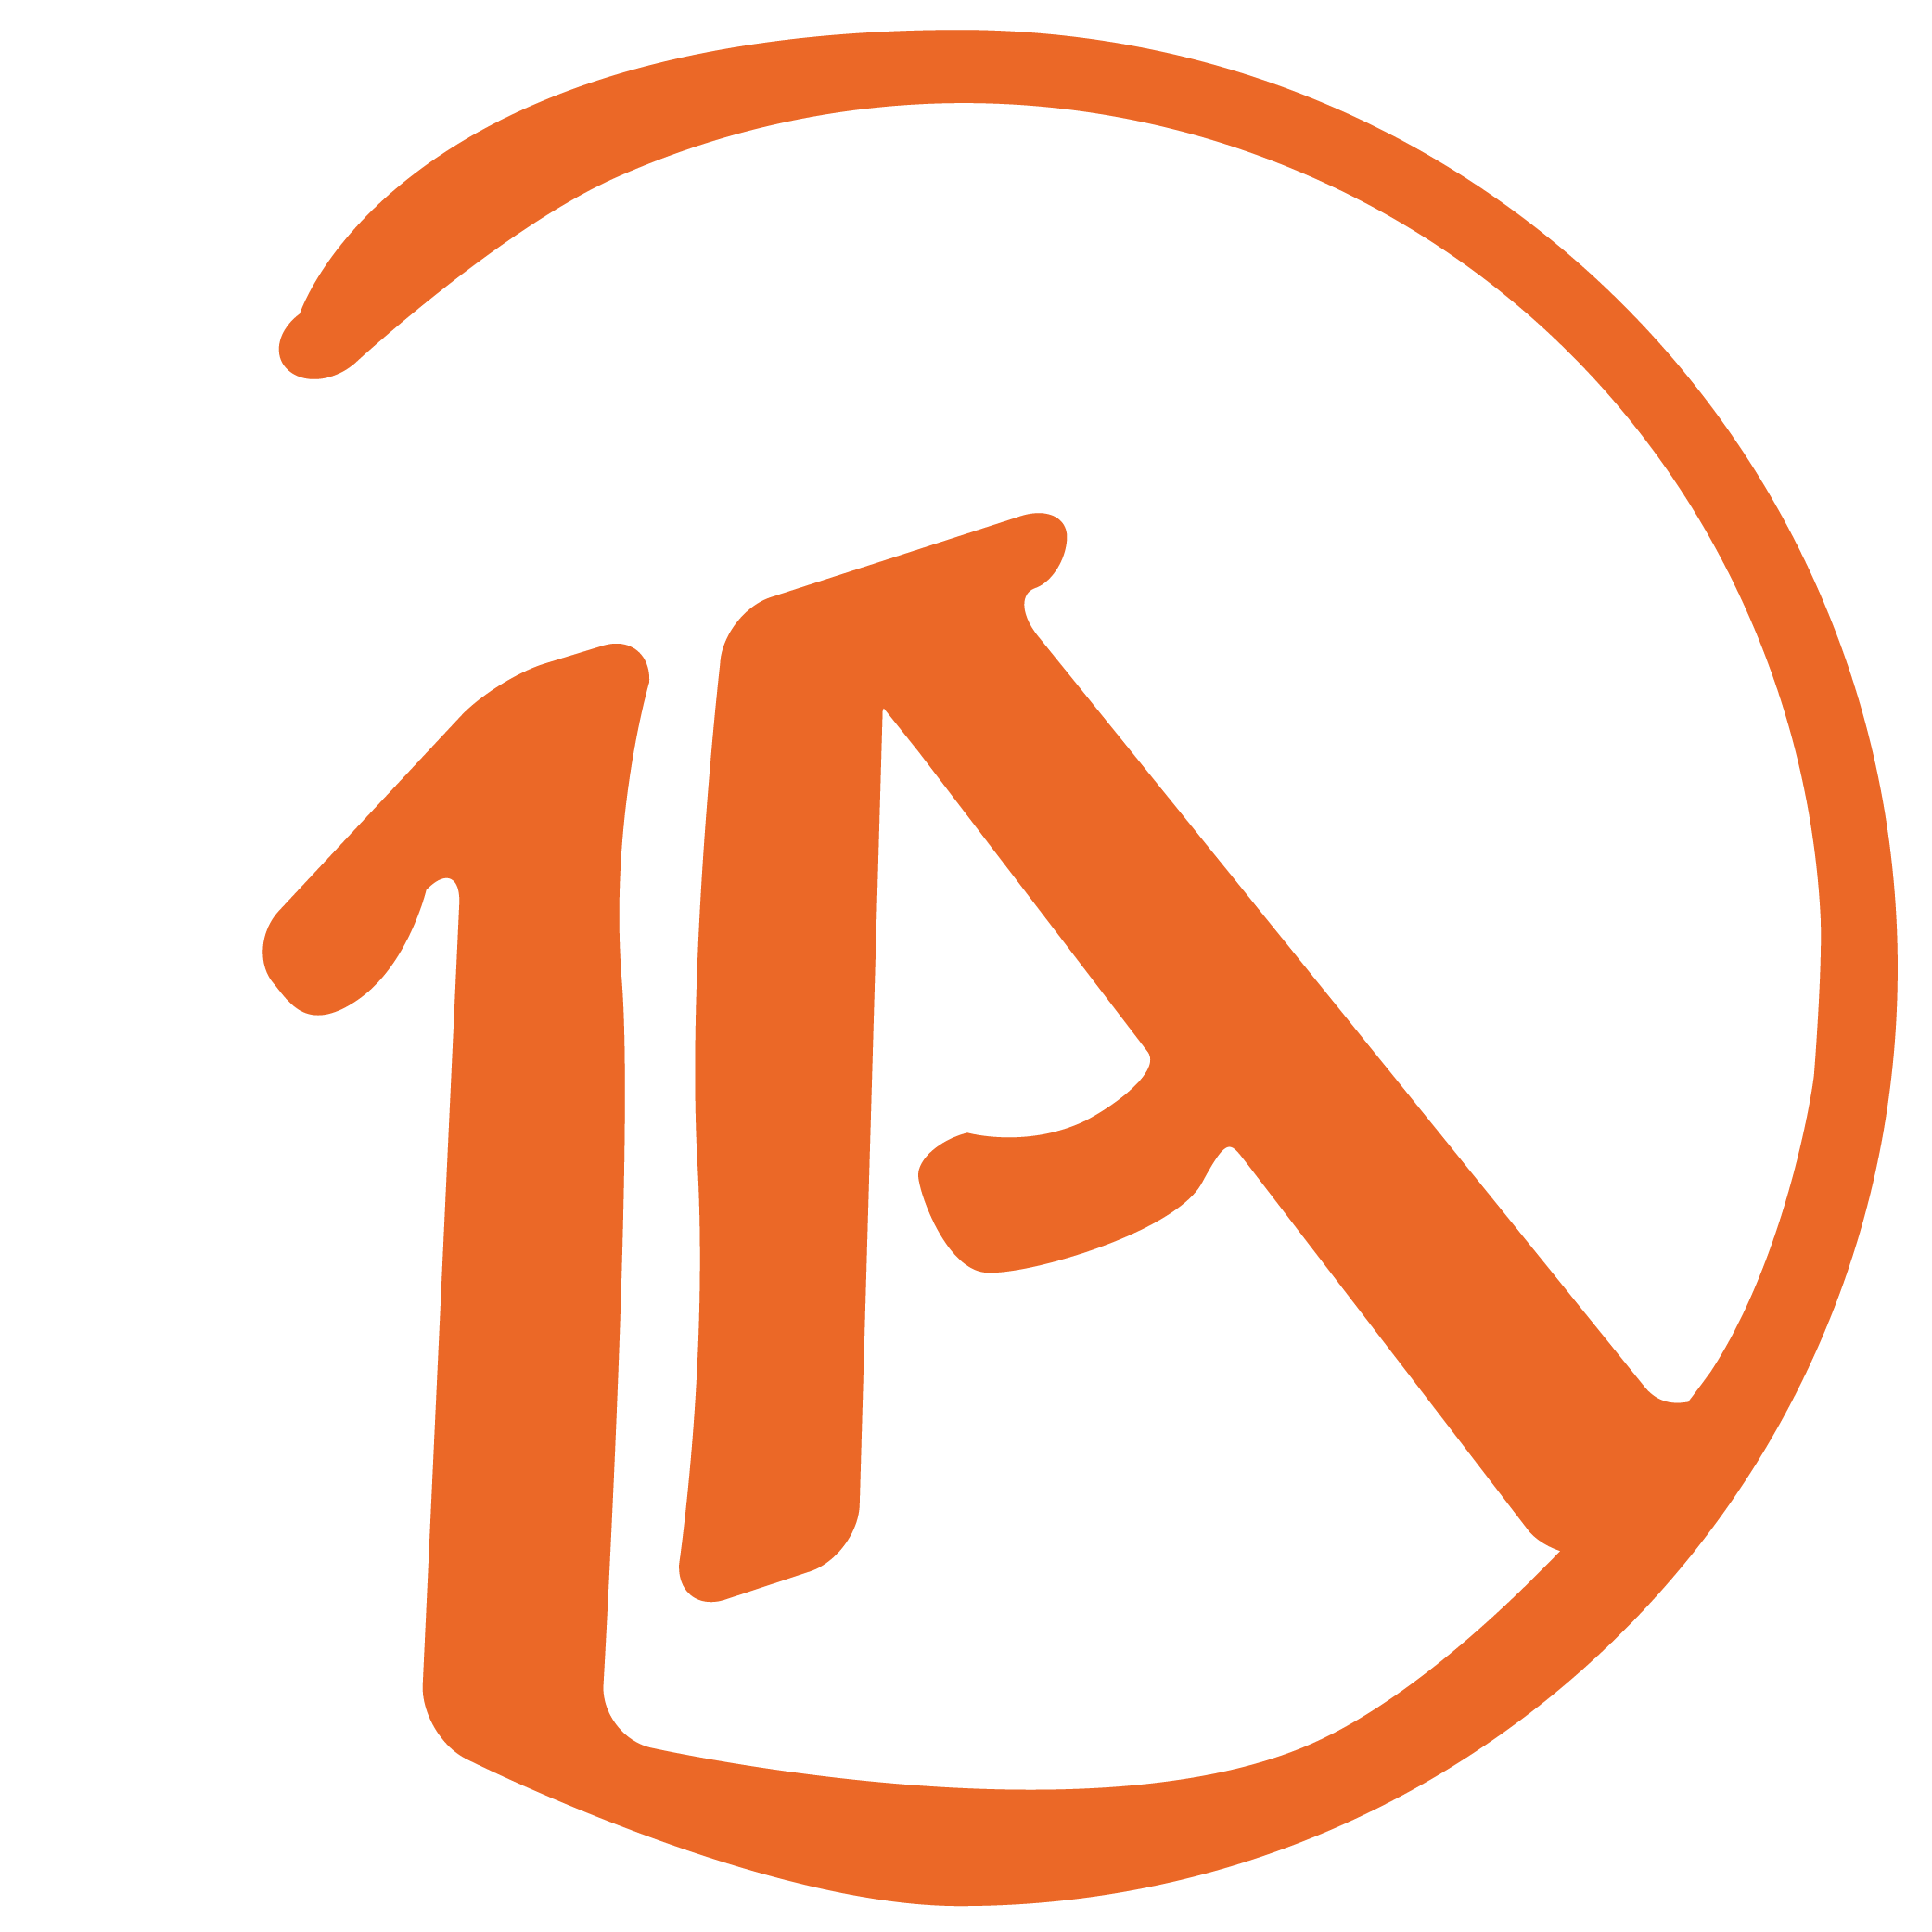 File:Logo 1a.png - Wikimedia Commons